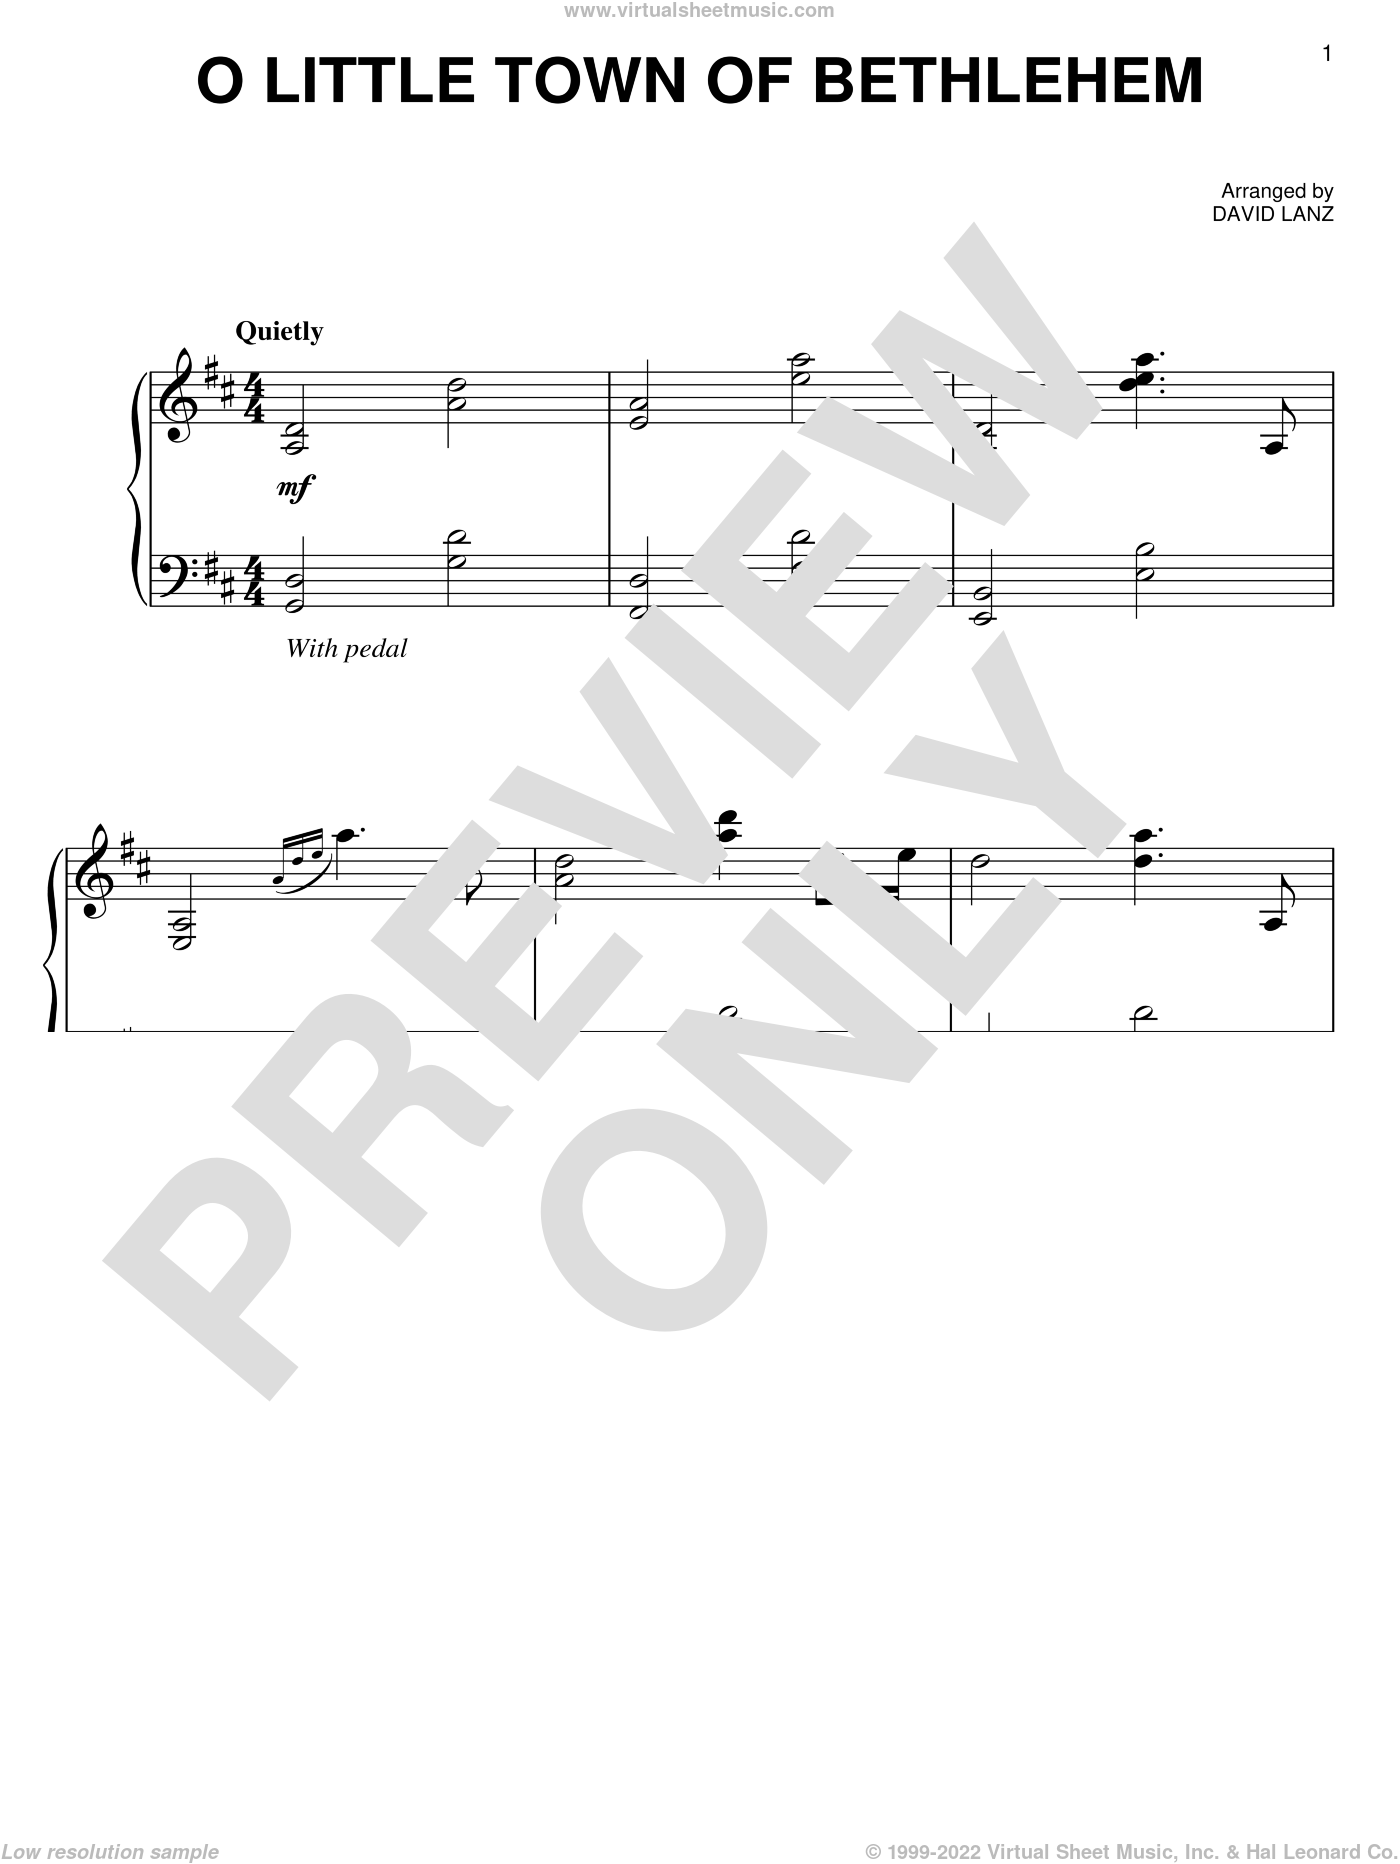 O Little Town Of Bethlehem sheet music for piano solo by David Lanz. Score Image Preview.